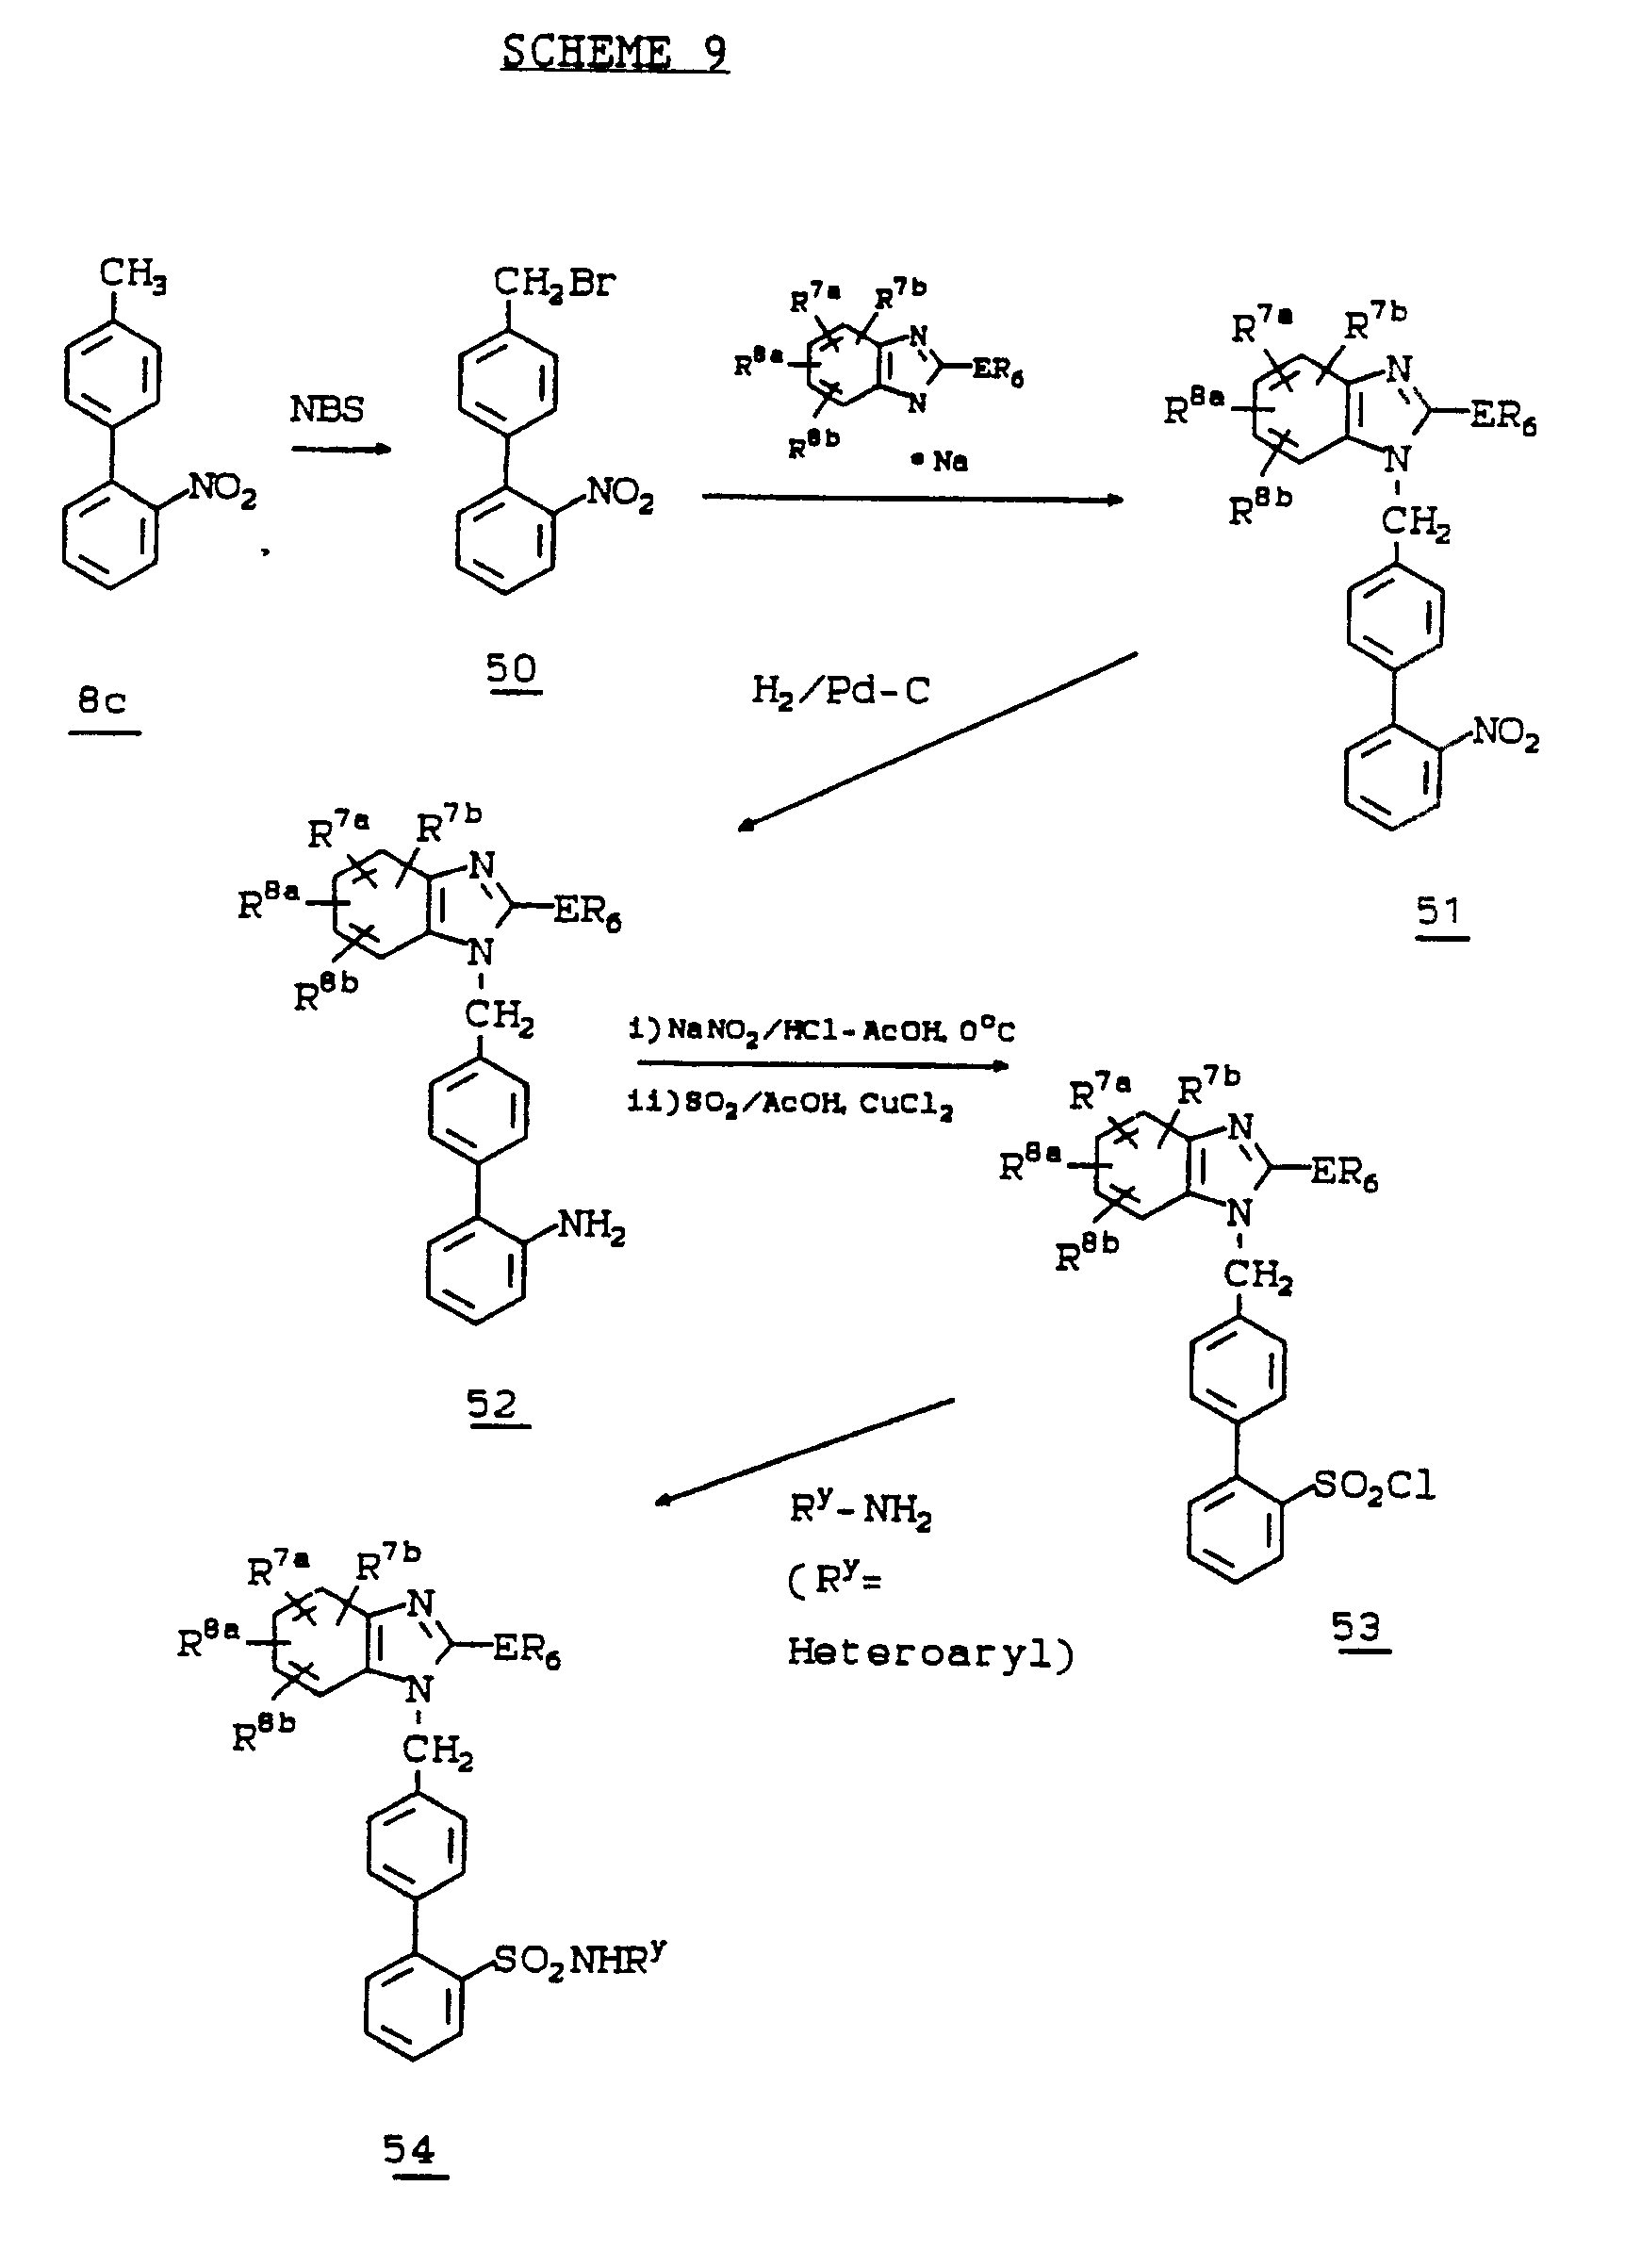 Aryl sulfonyl chloride synthesis biological synthesis of difunctional alkanes from carbohydrate feedstocks